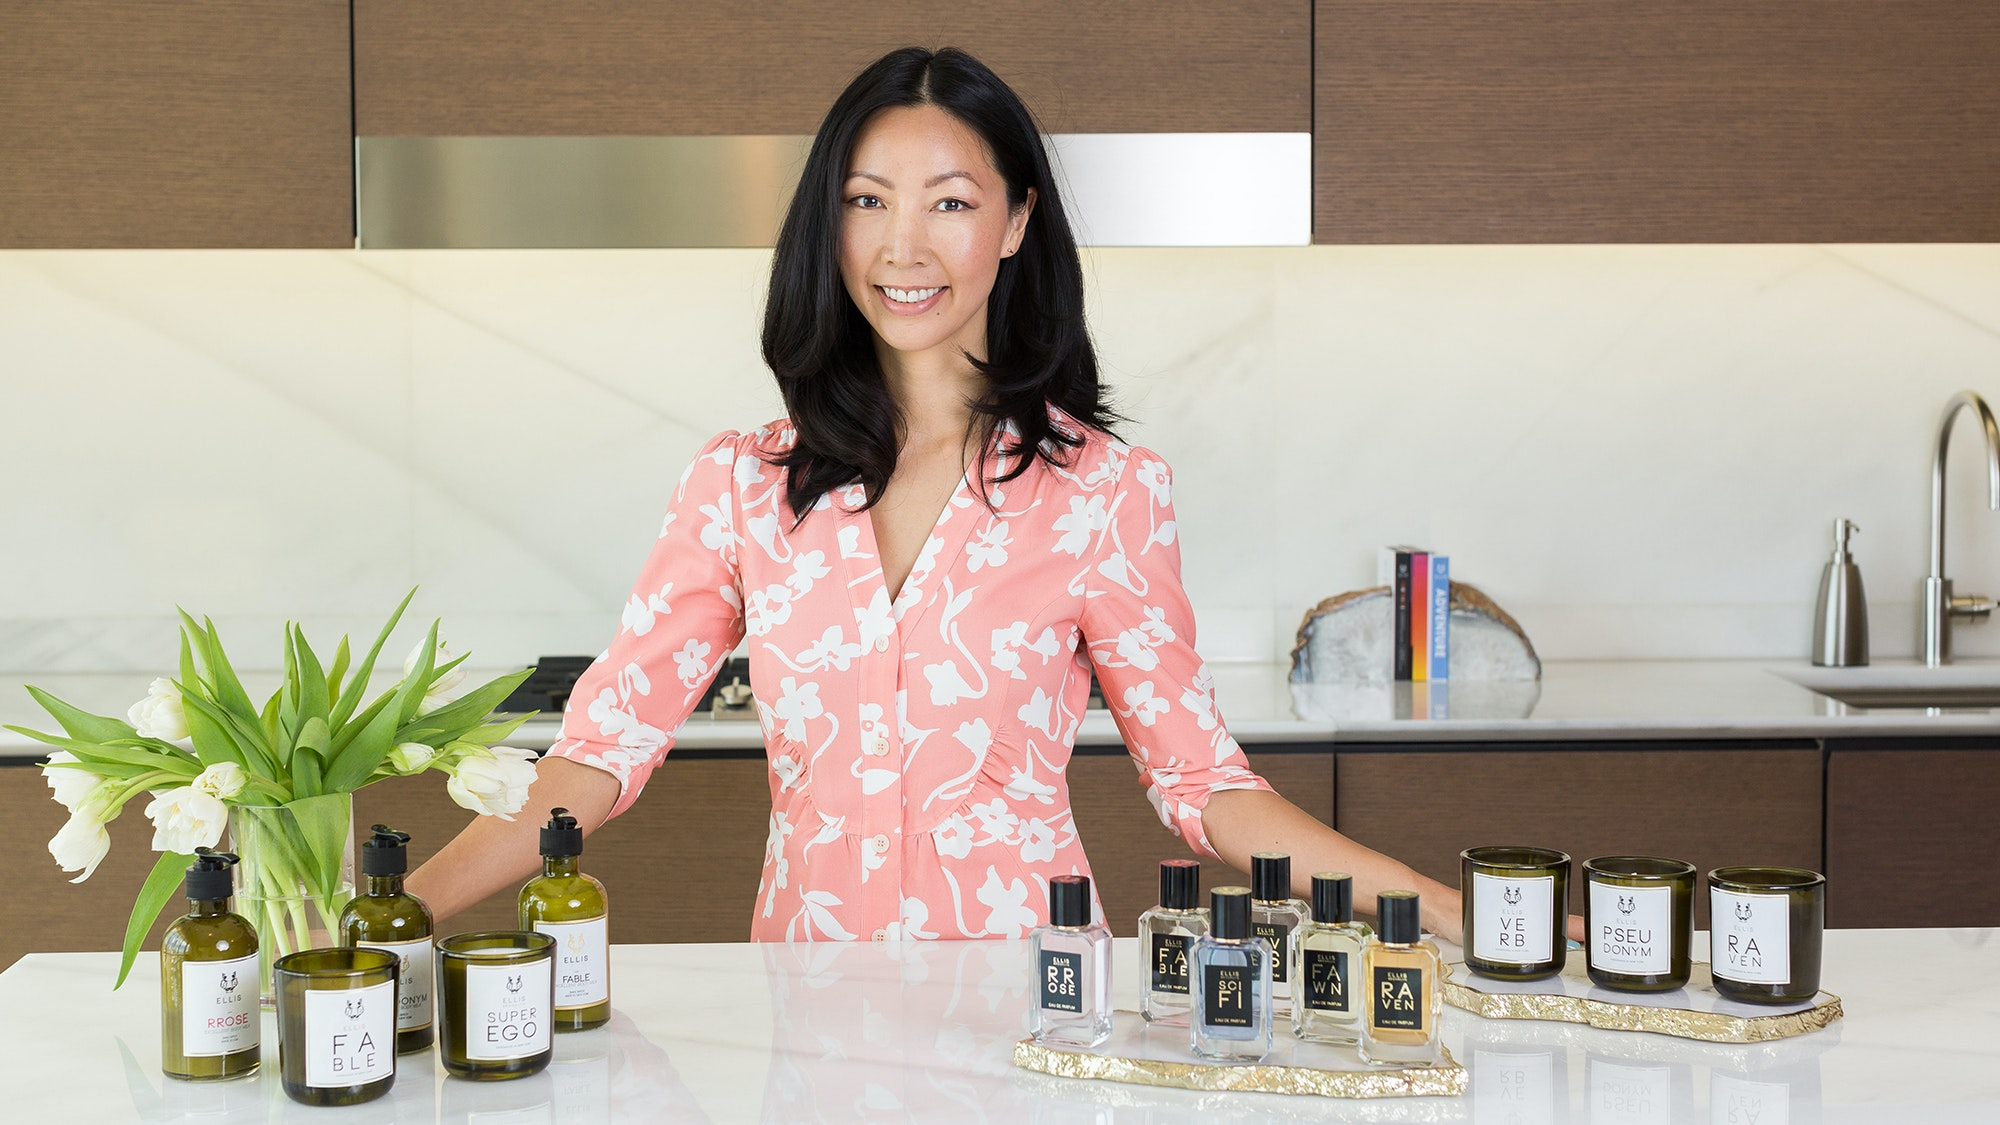 New York Times Columnist and Ellis Brooklyn Founder Bee Shapiro on Clean Beauty, Skincare Minis, and Lasers